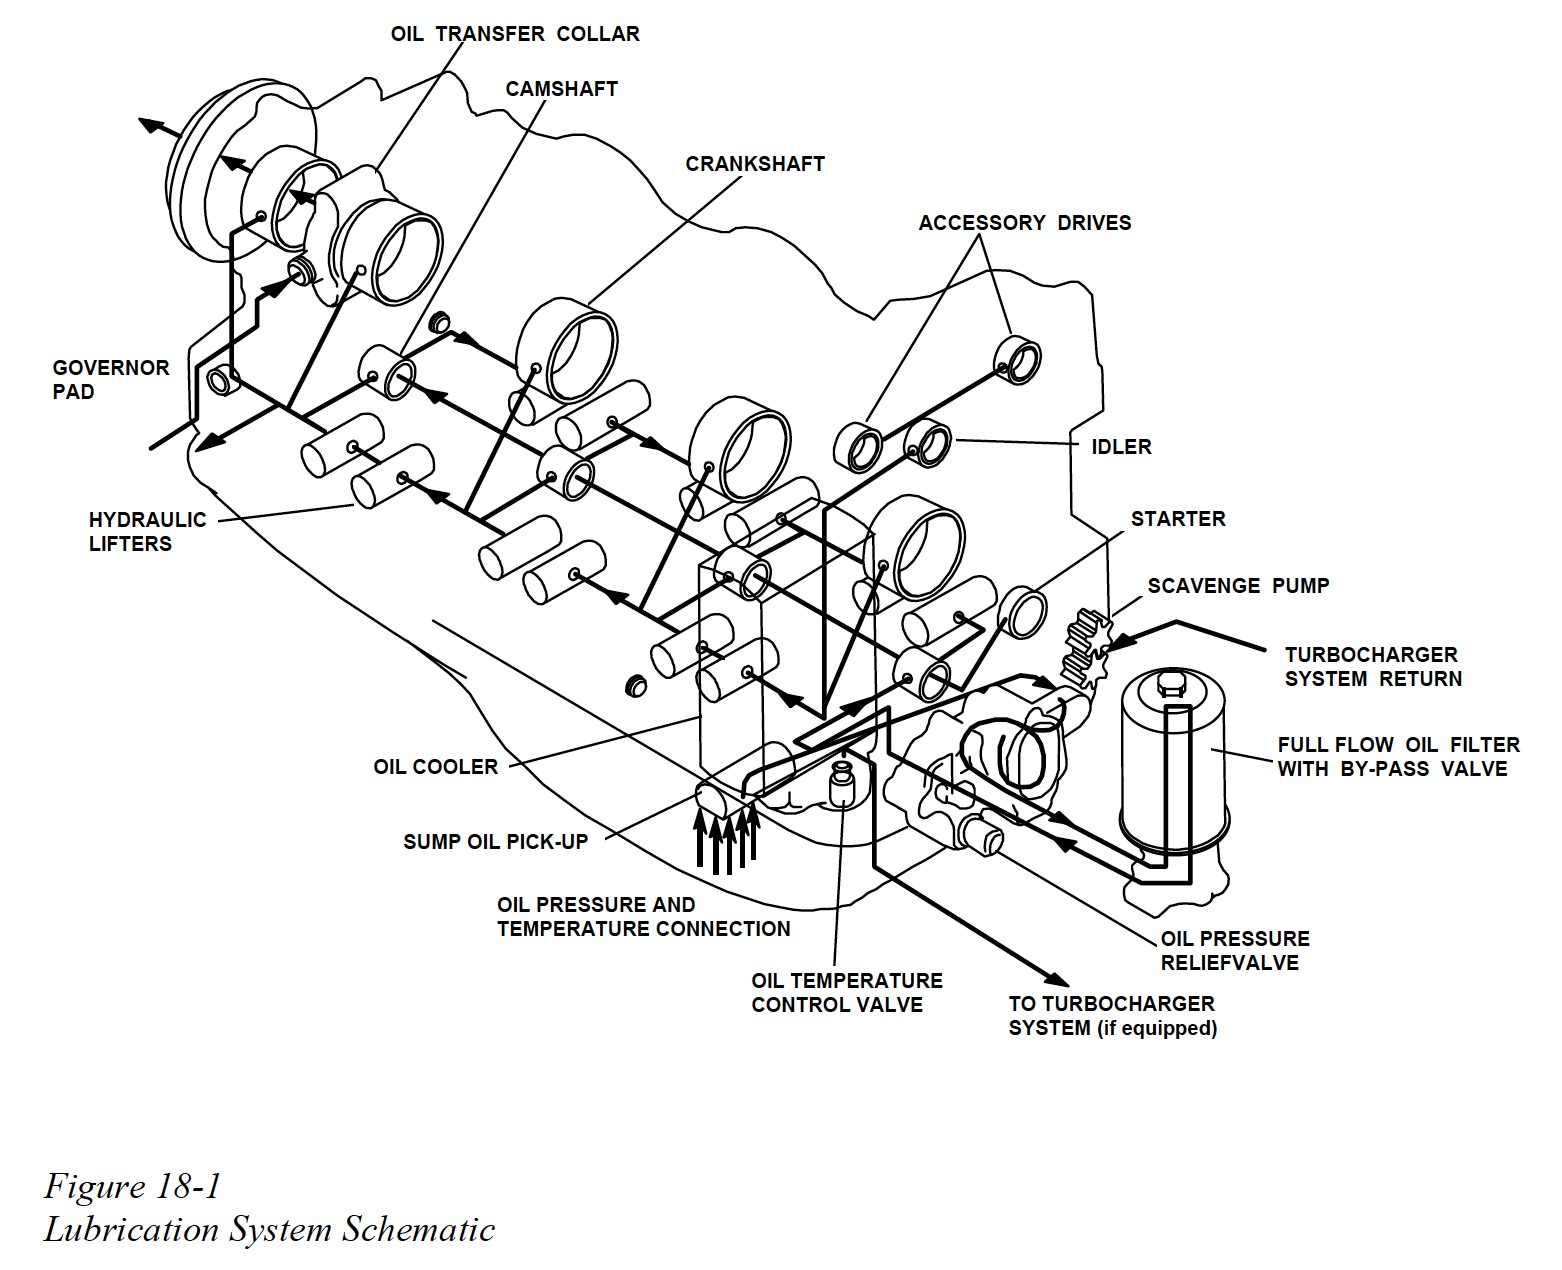 Engine Oil System Diagram An Fittings [archive] Vaf forums Of Engine Oil System Diagram Wilbo666 1jz Gte Jzz30 soarer Engine Wiring